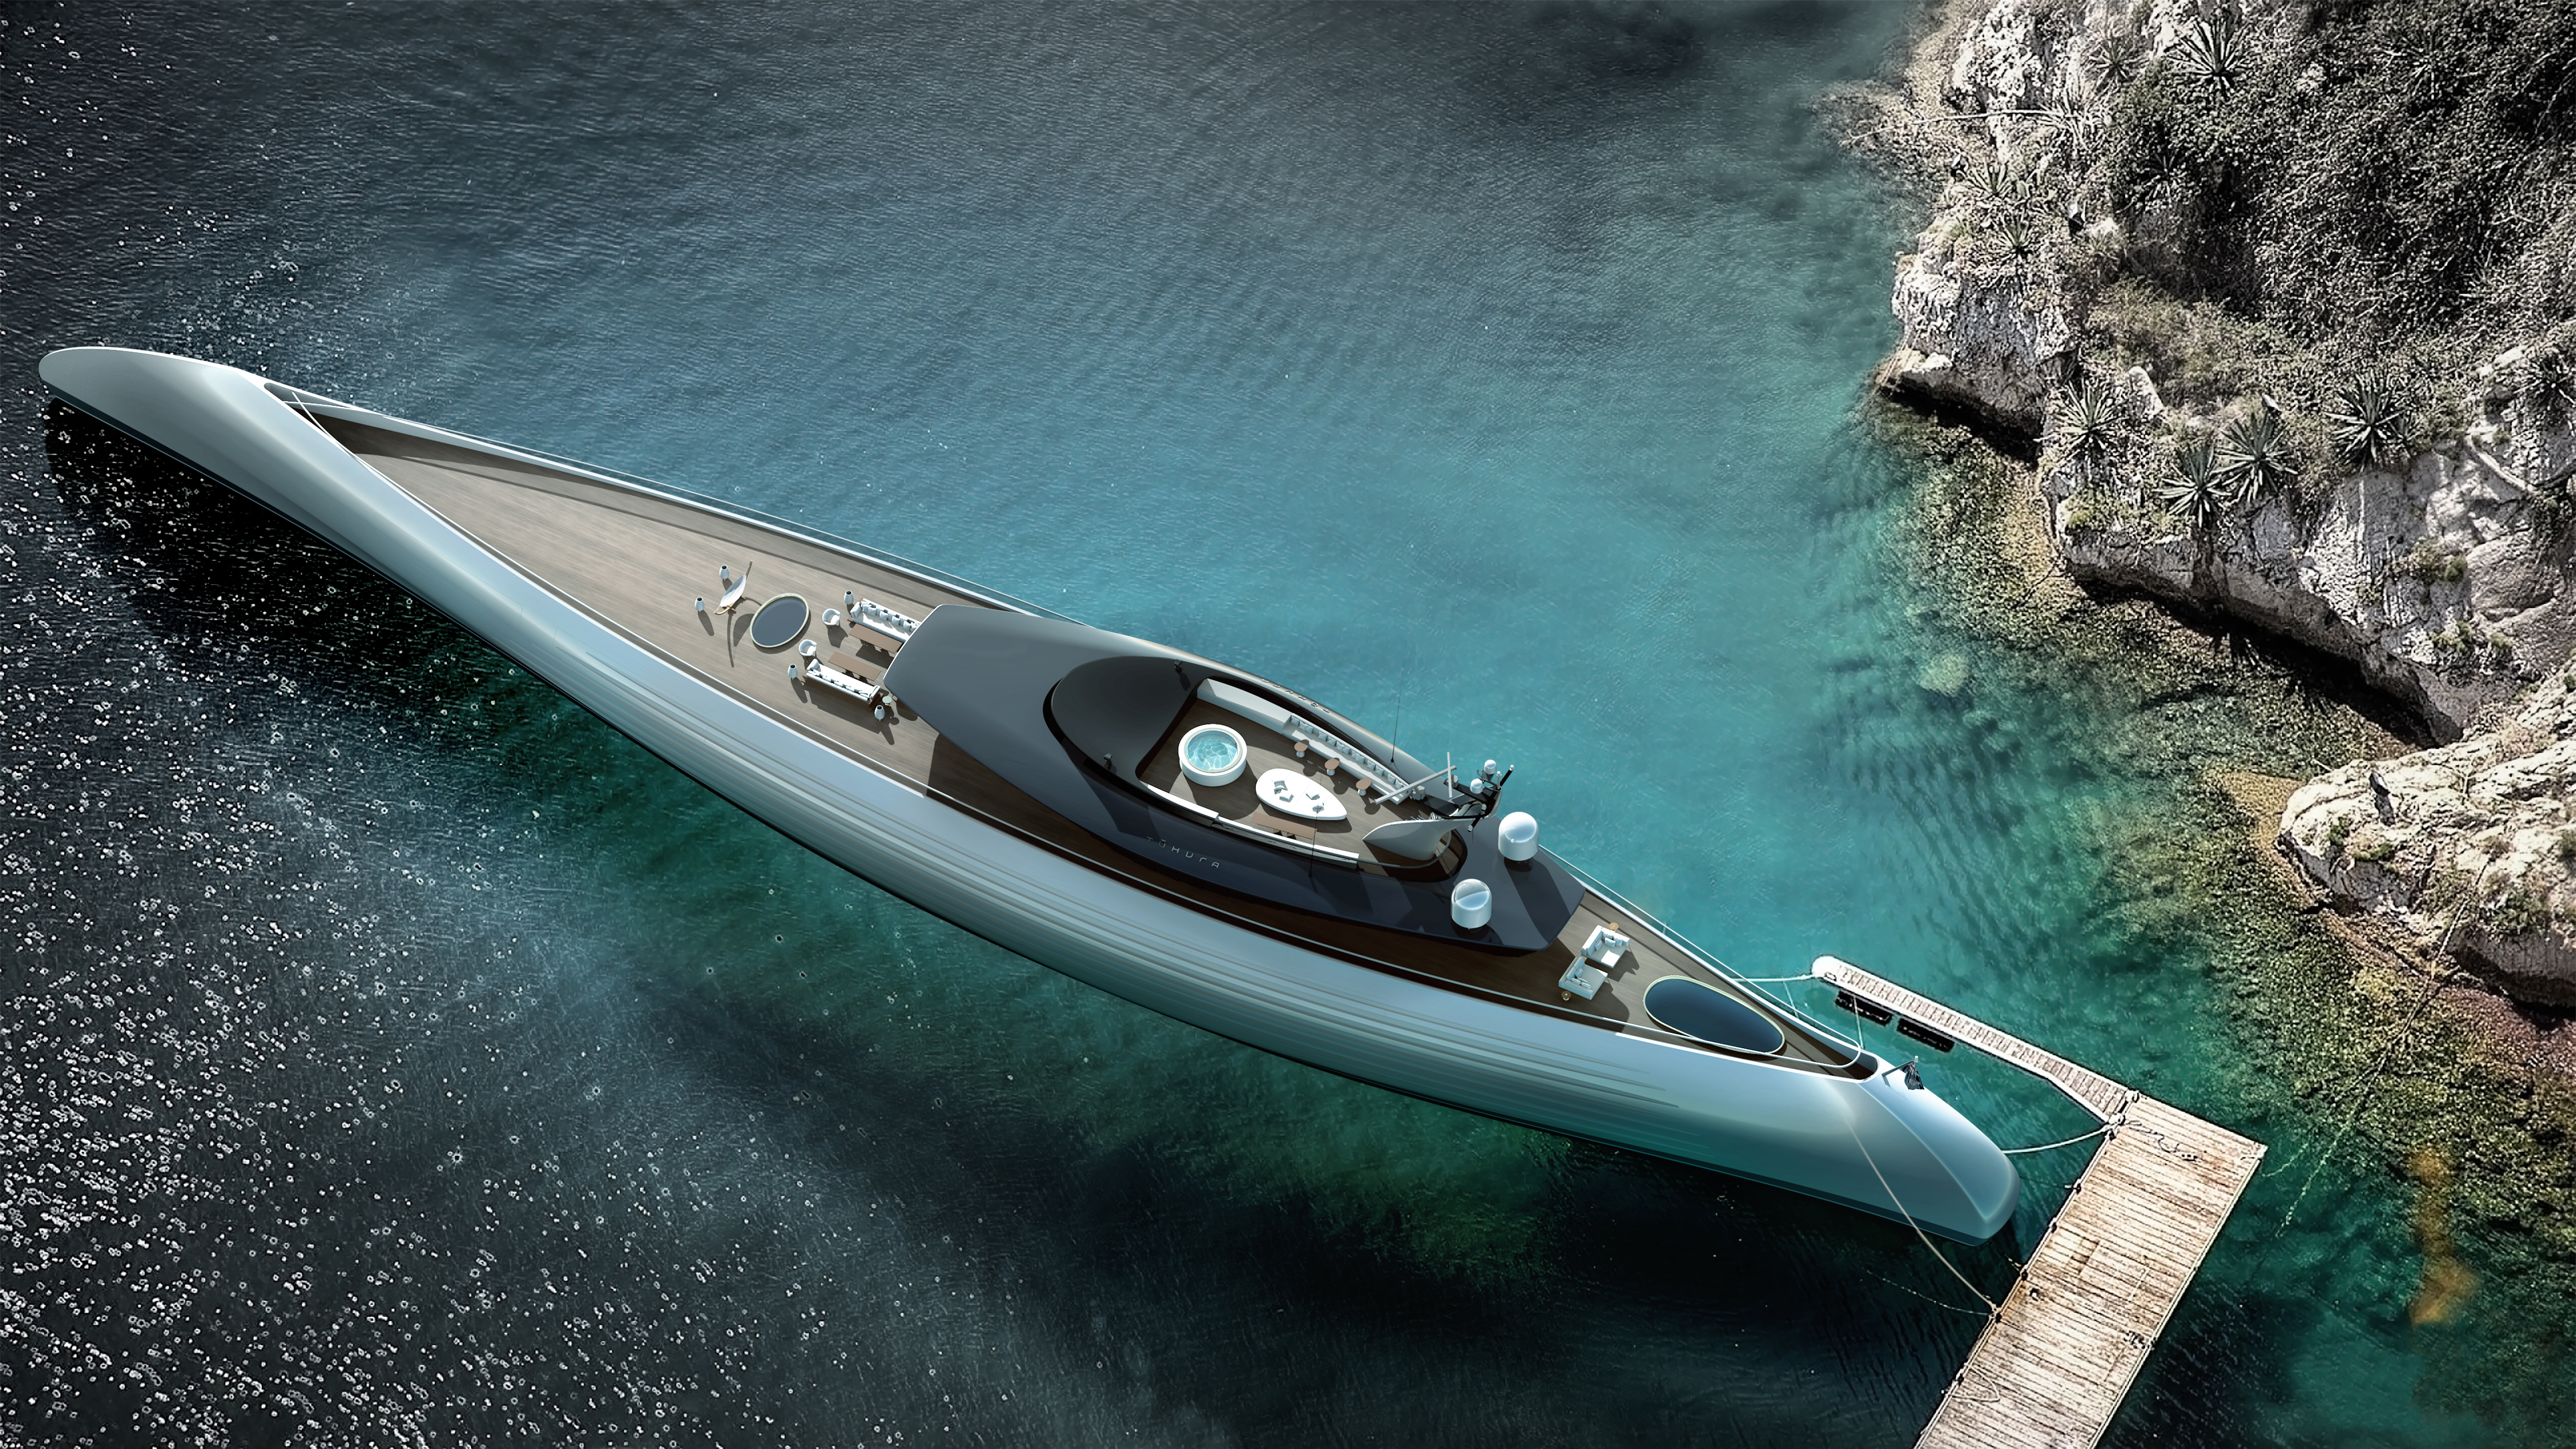 Image for article Oceanco unveils new superyacht design